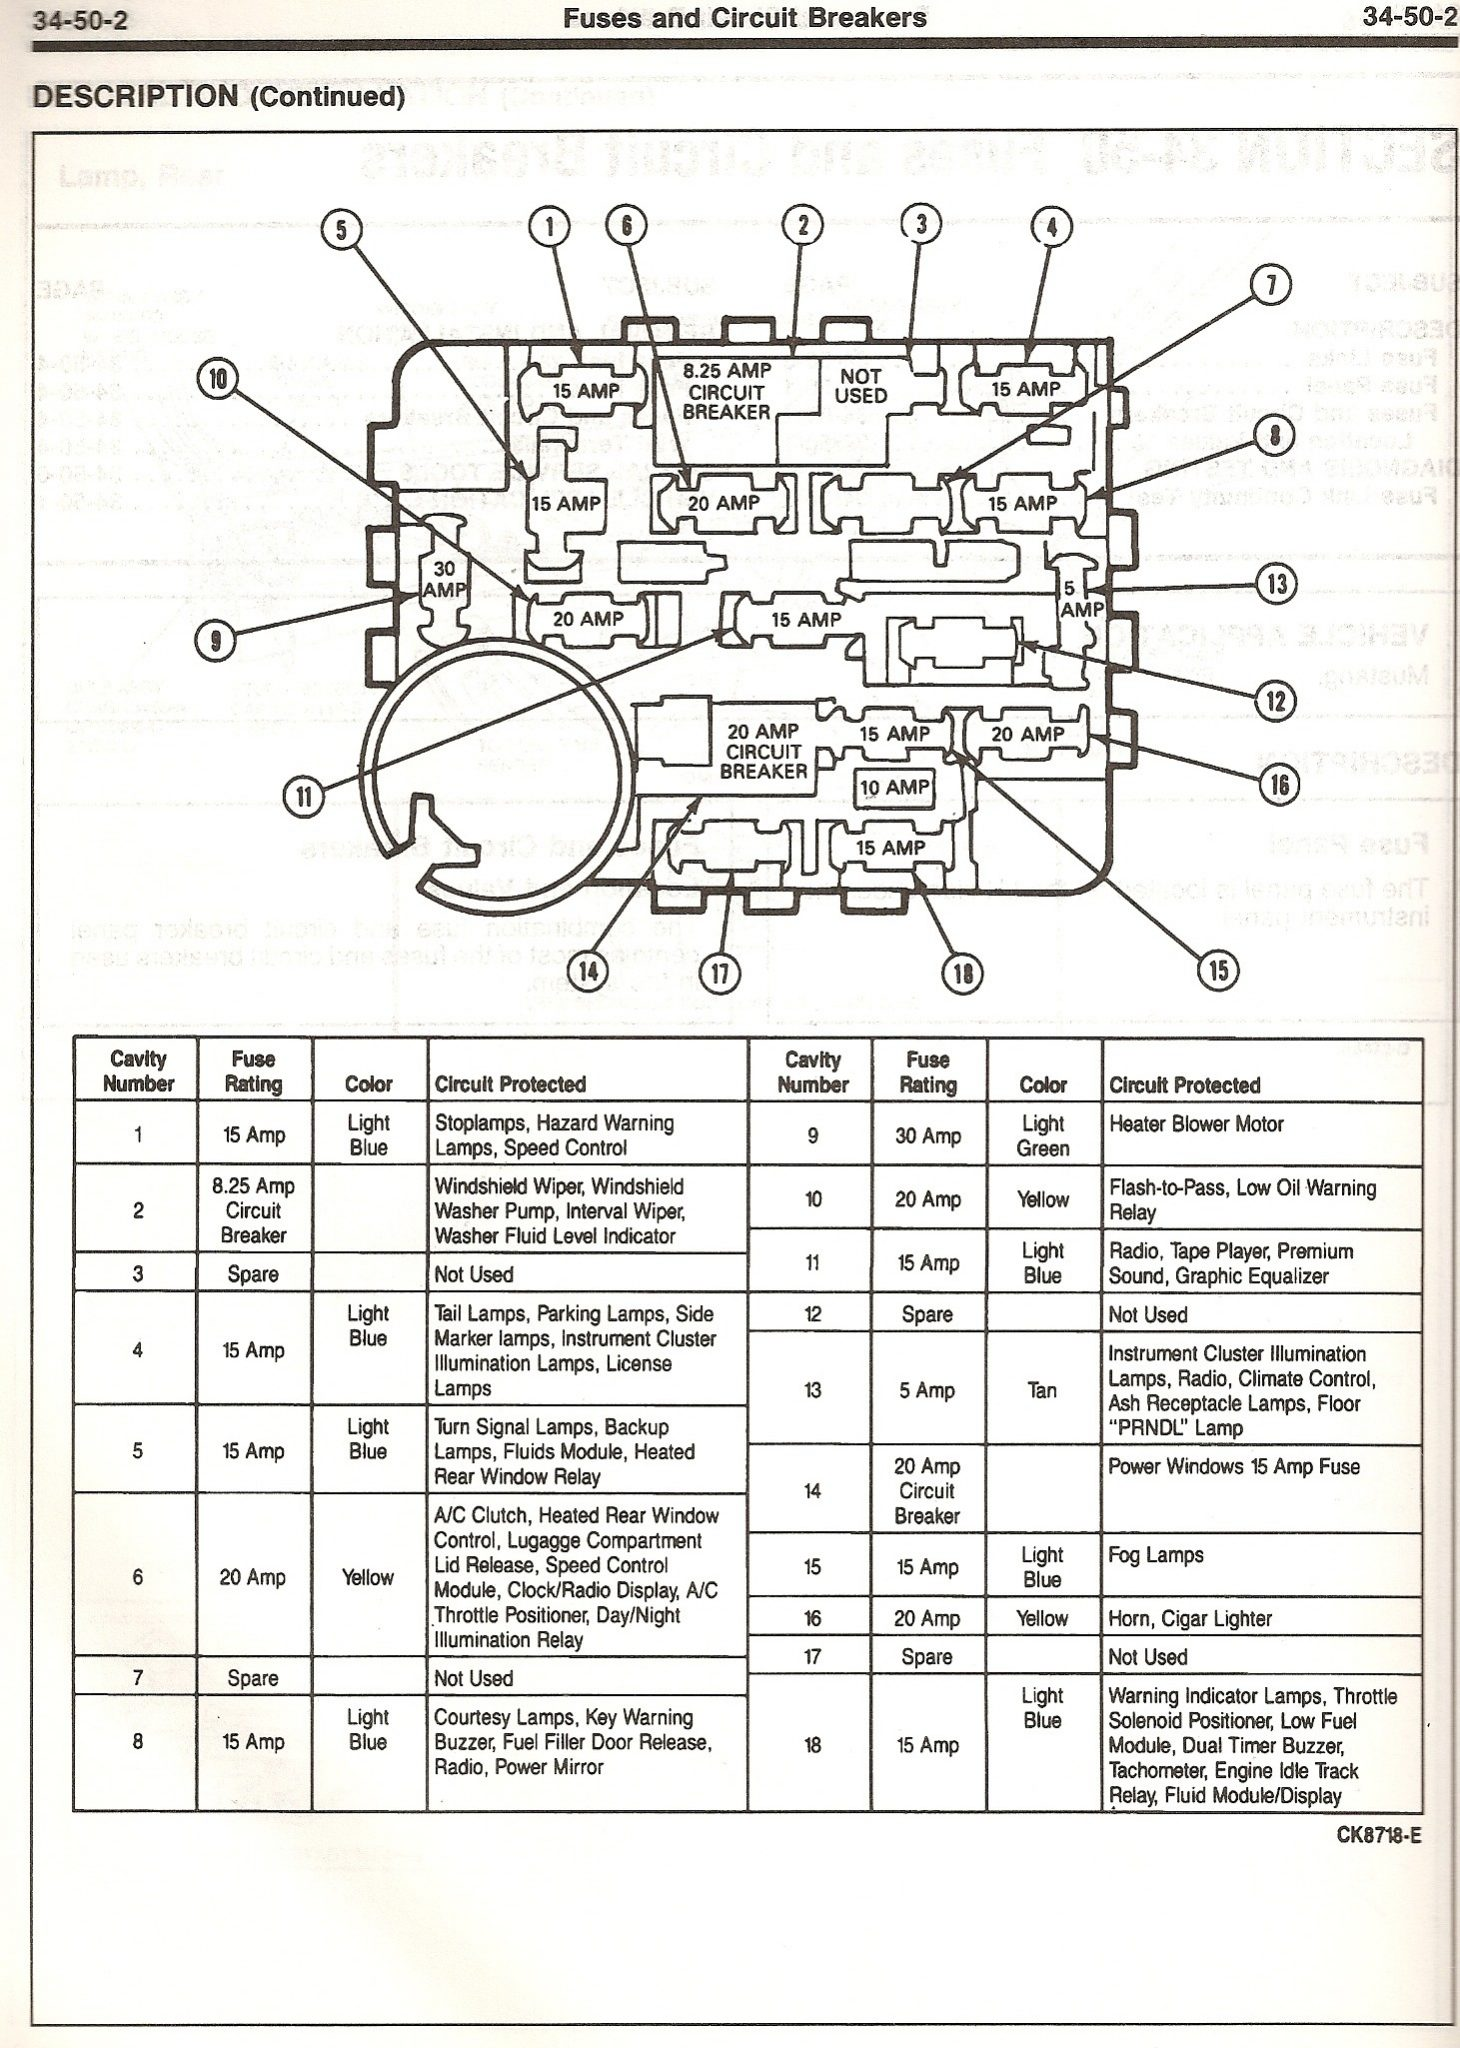 2002 peterbilt 379 turn signal wiring diagram with Brake Light Switch 1999 Ford F250 Super Duty on Brake Light Switch 1999 Ford F250 Super Duty also Peterbilt 379 Wiring Schematic Alternator Wiring Diagrams furthermore Showthread together with 89 Chevy Blazer Wiring Diagram as well 97 E150 Wiring Diagram.